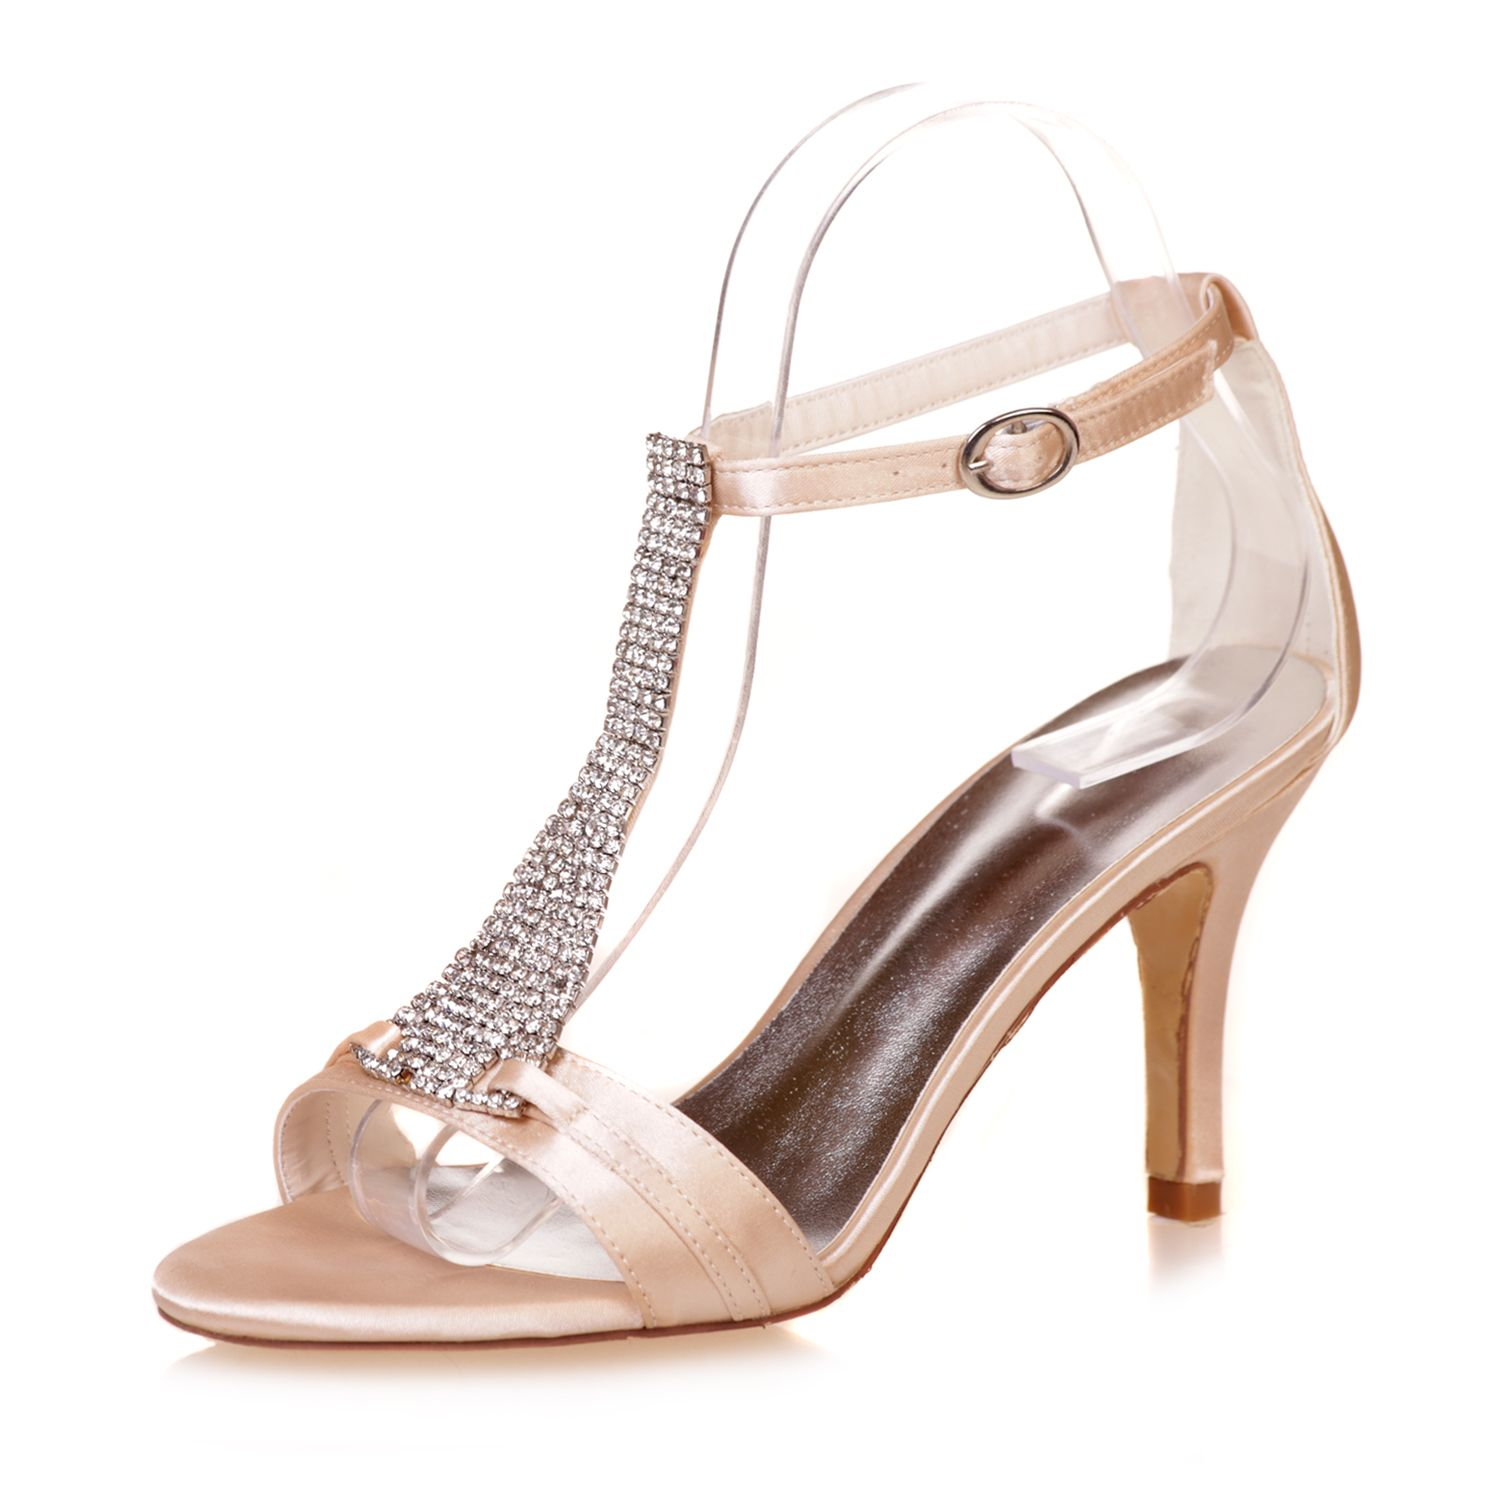 8.5cm 3inches heel satin evening dress shoes  bb832afc1518